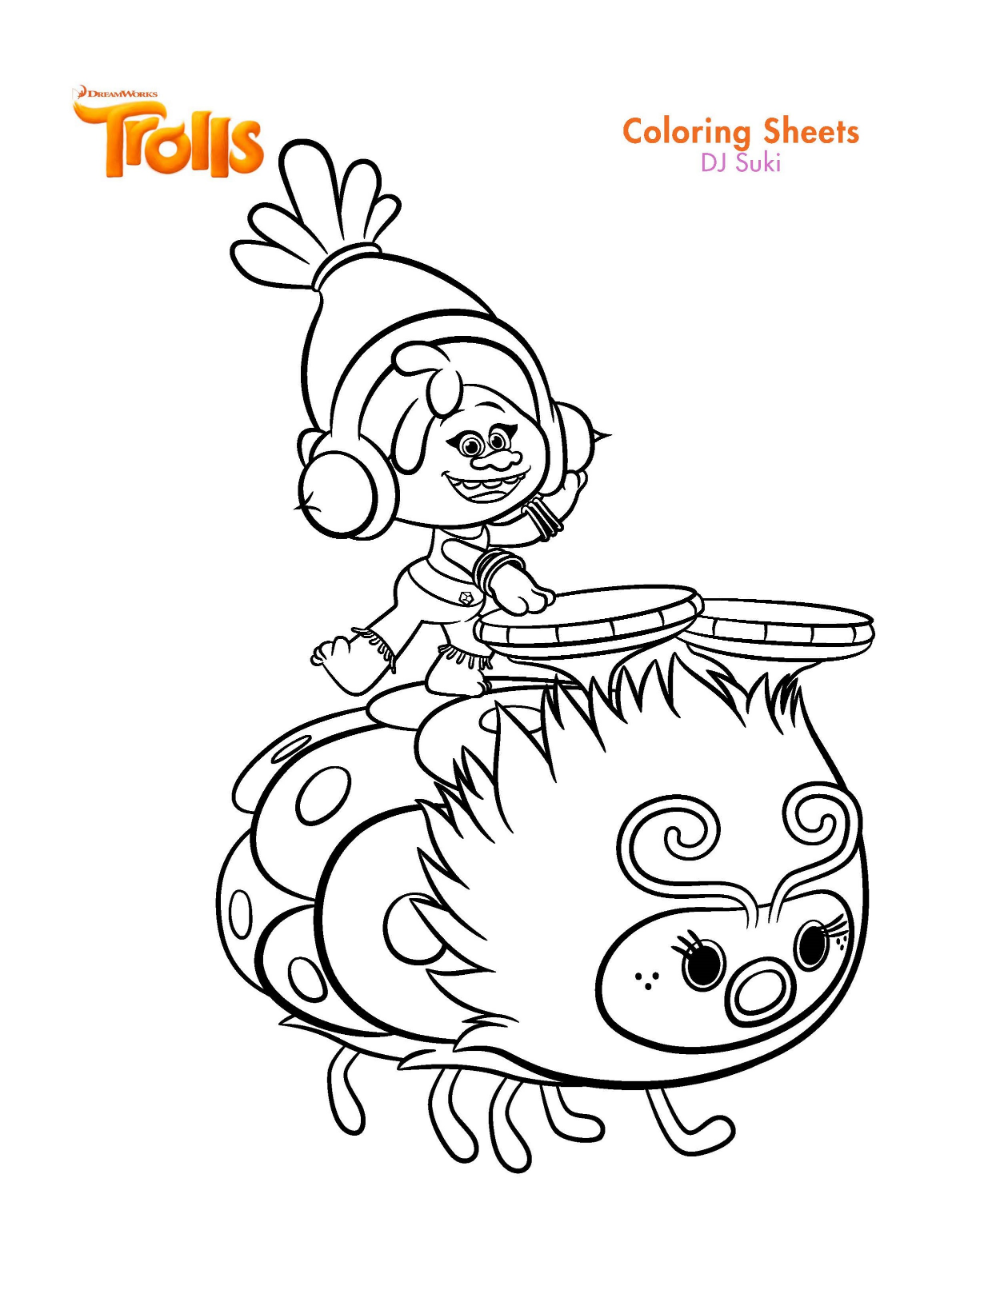 Trolls Coloring Pages Printable Shelter Poppy Coloring Page Cartoon Coloring Pages Disney Coloring Pages